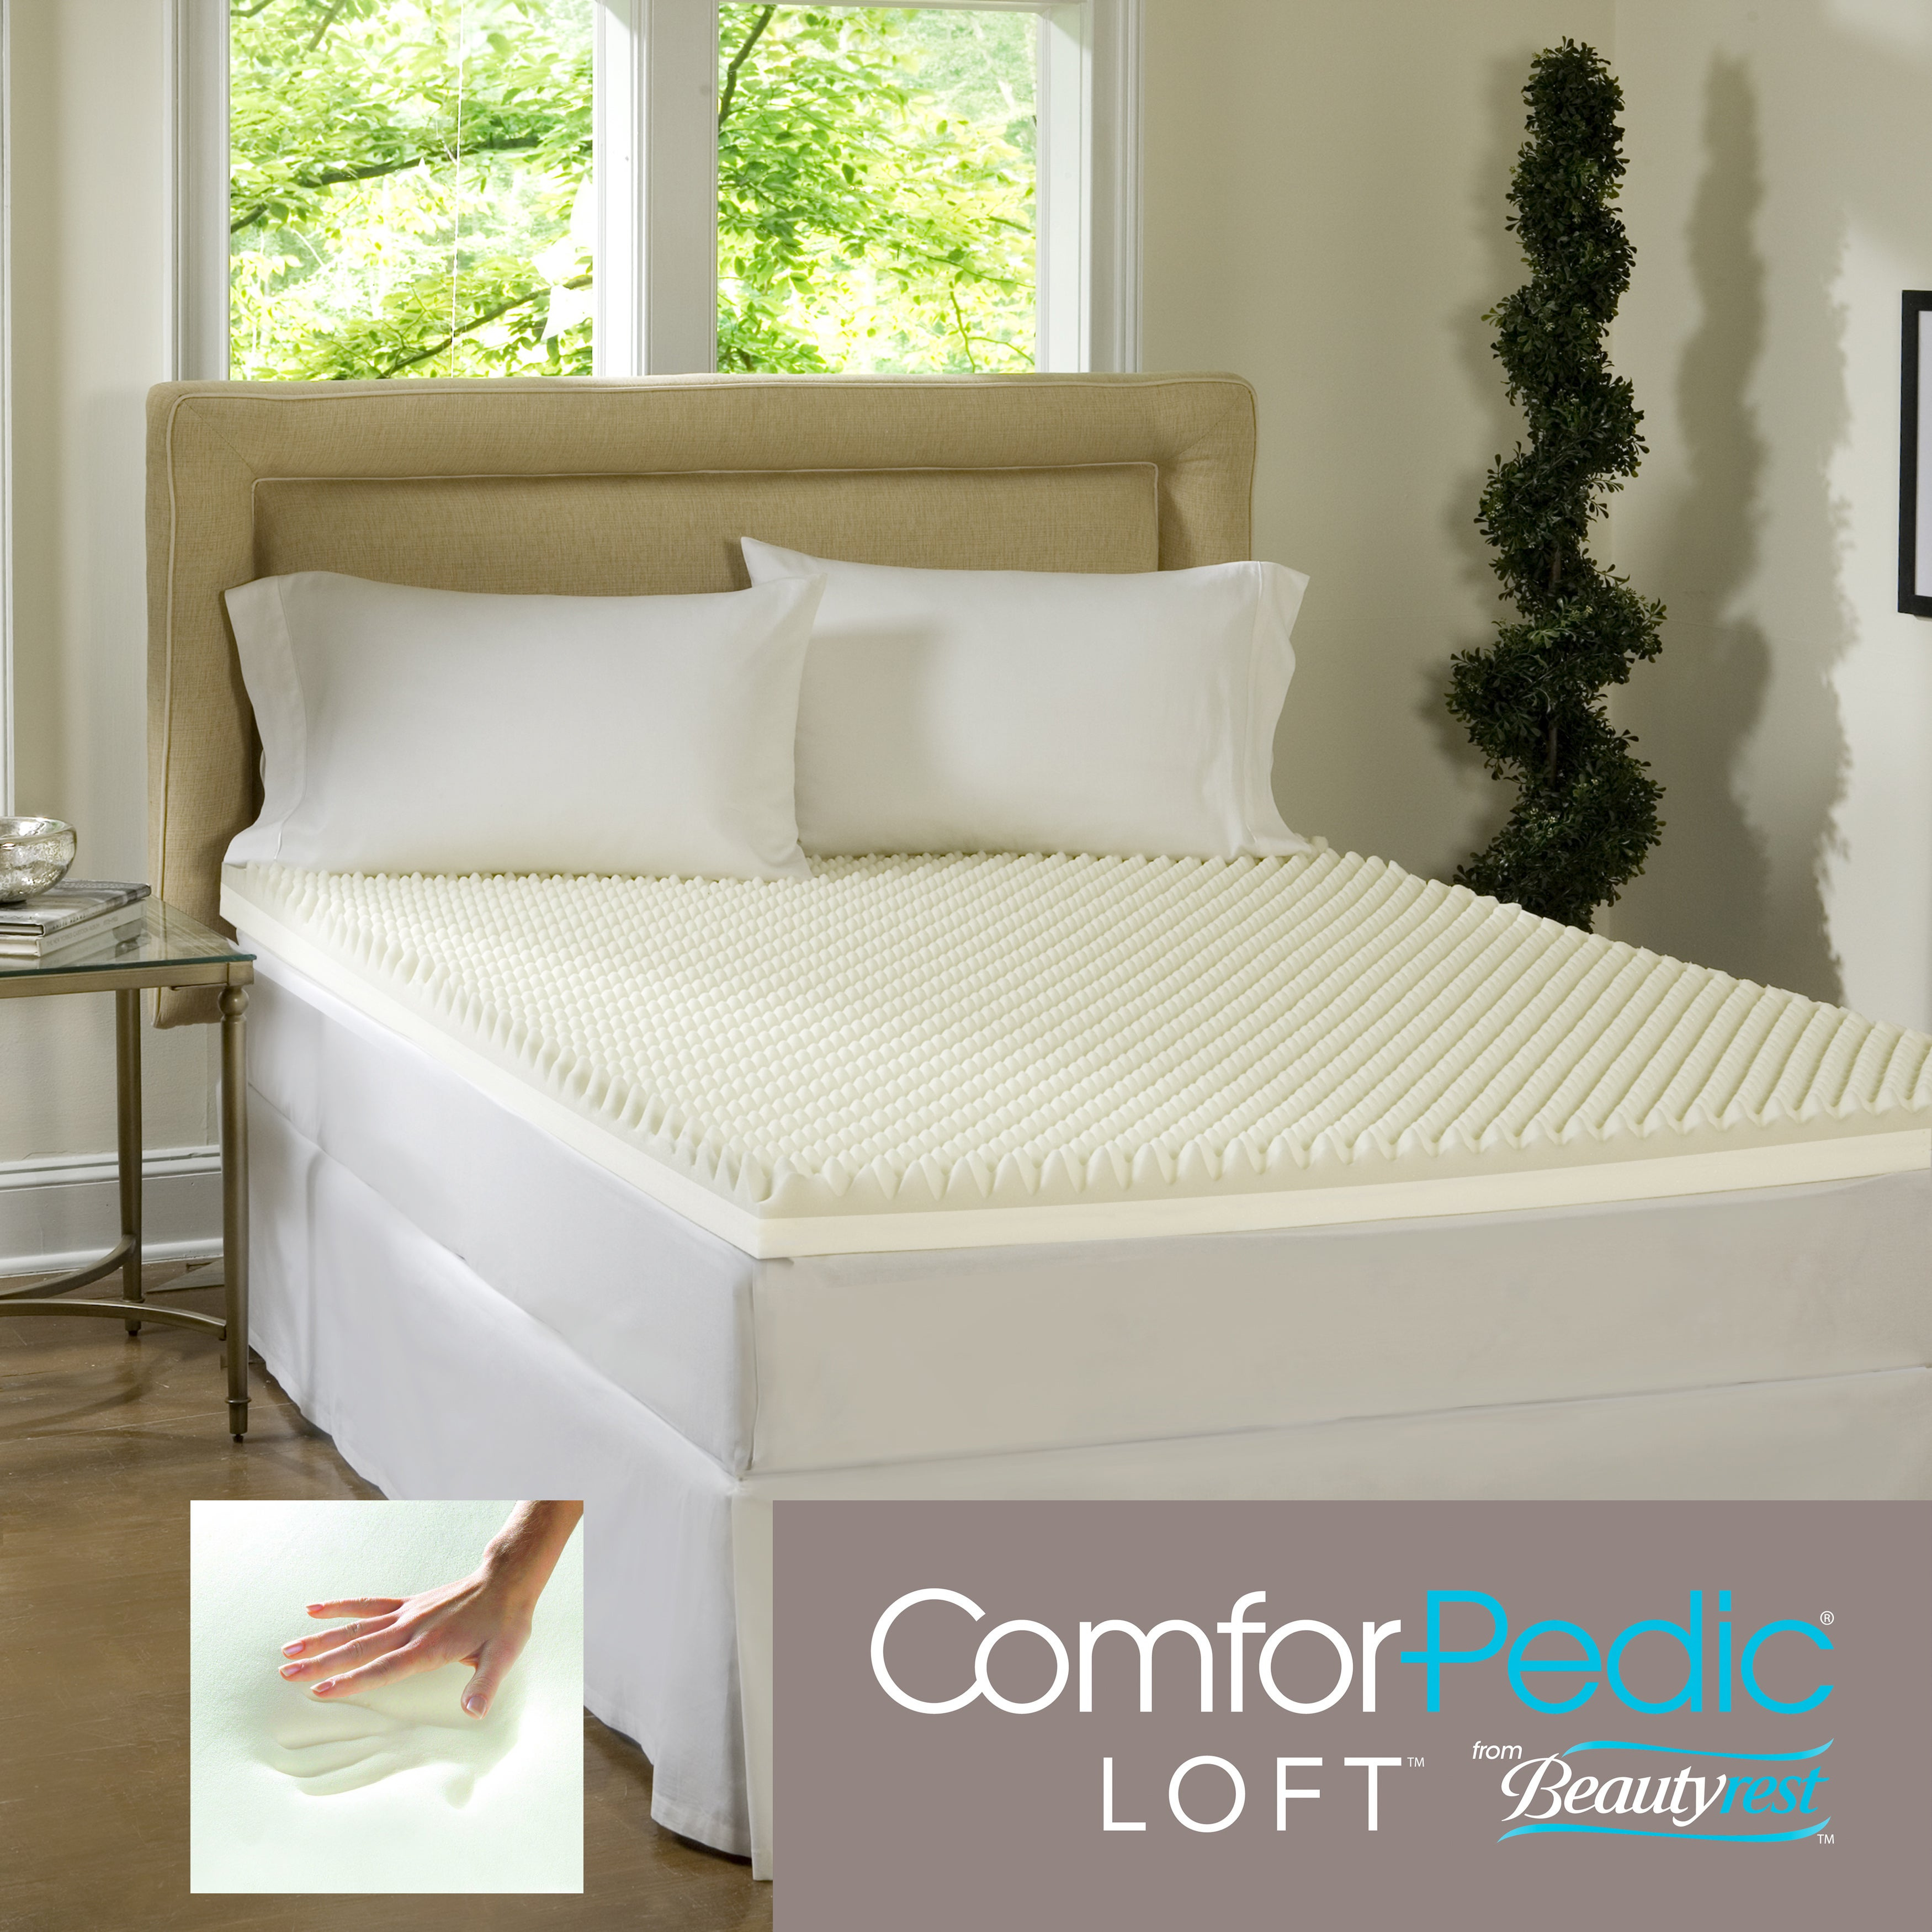 Beautyrest Highloft Mattress Makeover 4-inch Memory Foam Topper at Sears.com